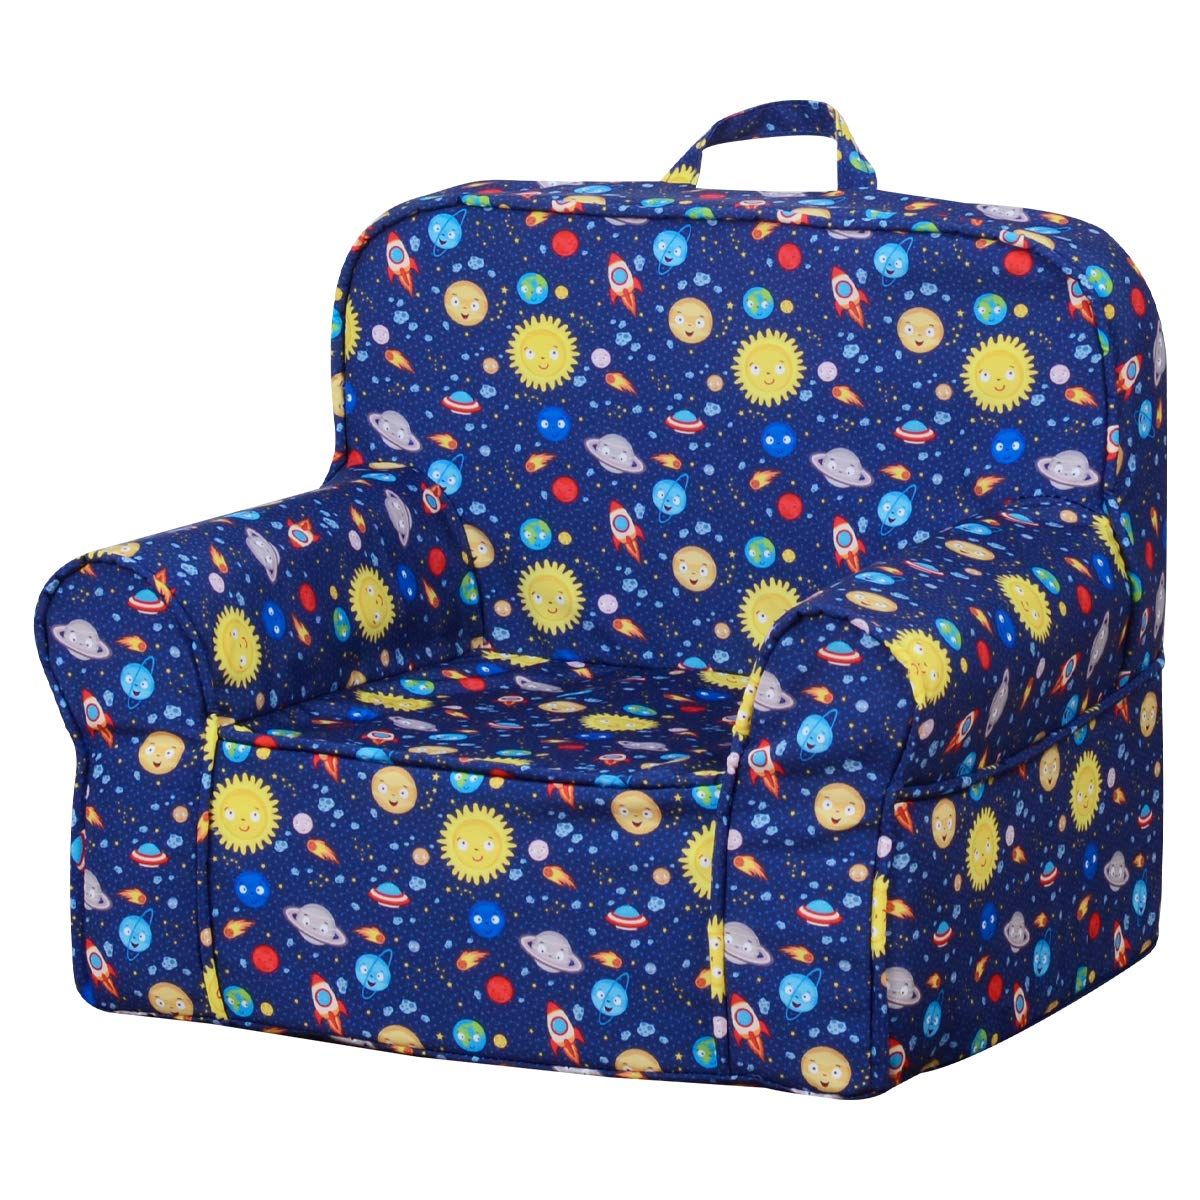 Awesome Babyland Full Foam Kids Sofa Blue 3 3Lb Sponge Safety And Soft Armchair Couch For 1 3 Years Baby With Washable Cover Unemploymentrelief Wooden Chair Designs For Living Room Unemploymentrelieforg